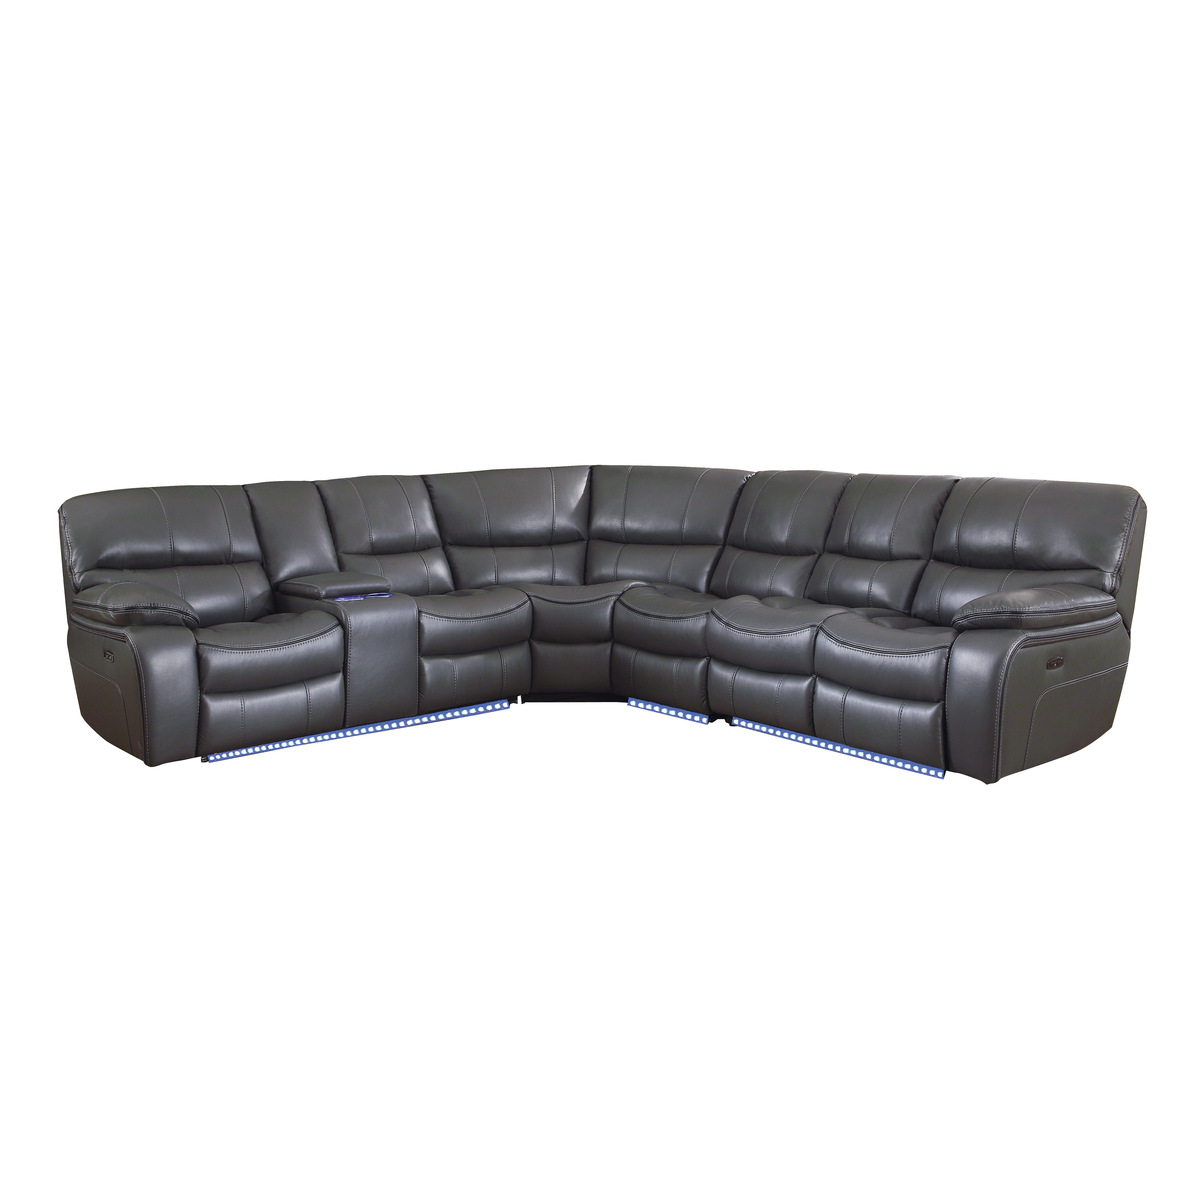 8480gry 4scpd 4 Piece Modular Power Reclining Sectional With Left Console And Led